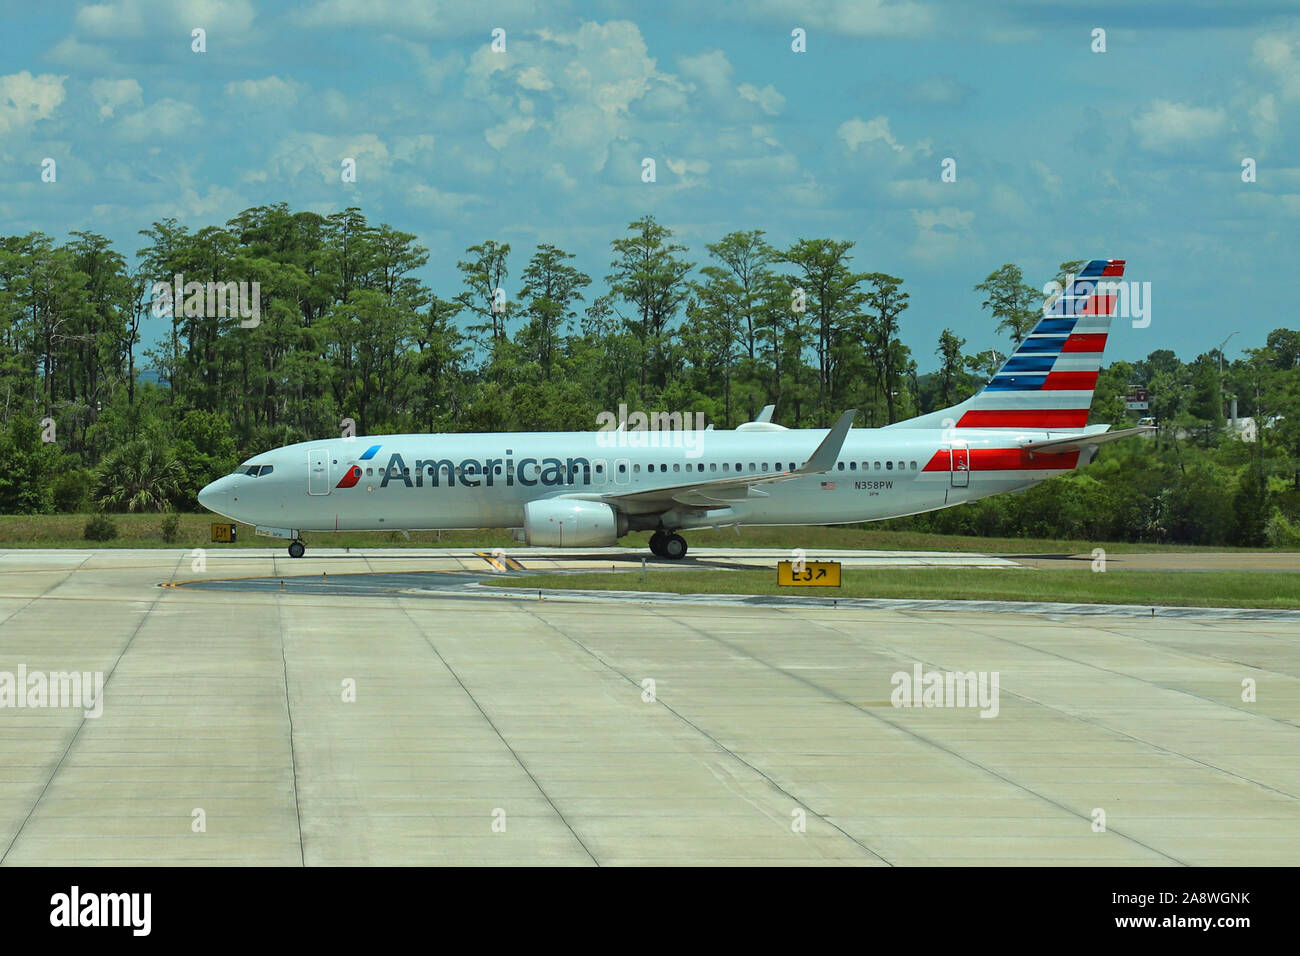 American Airlines Boeing 737-823 aircraft N368PW Stock Photo